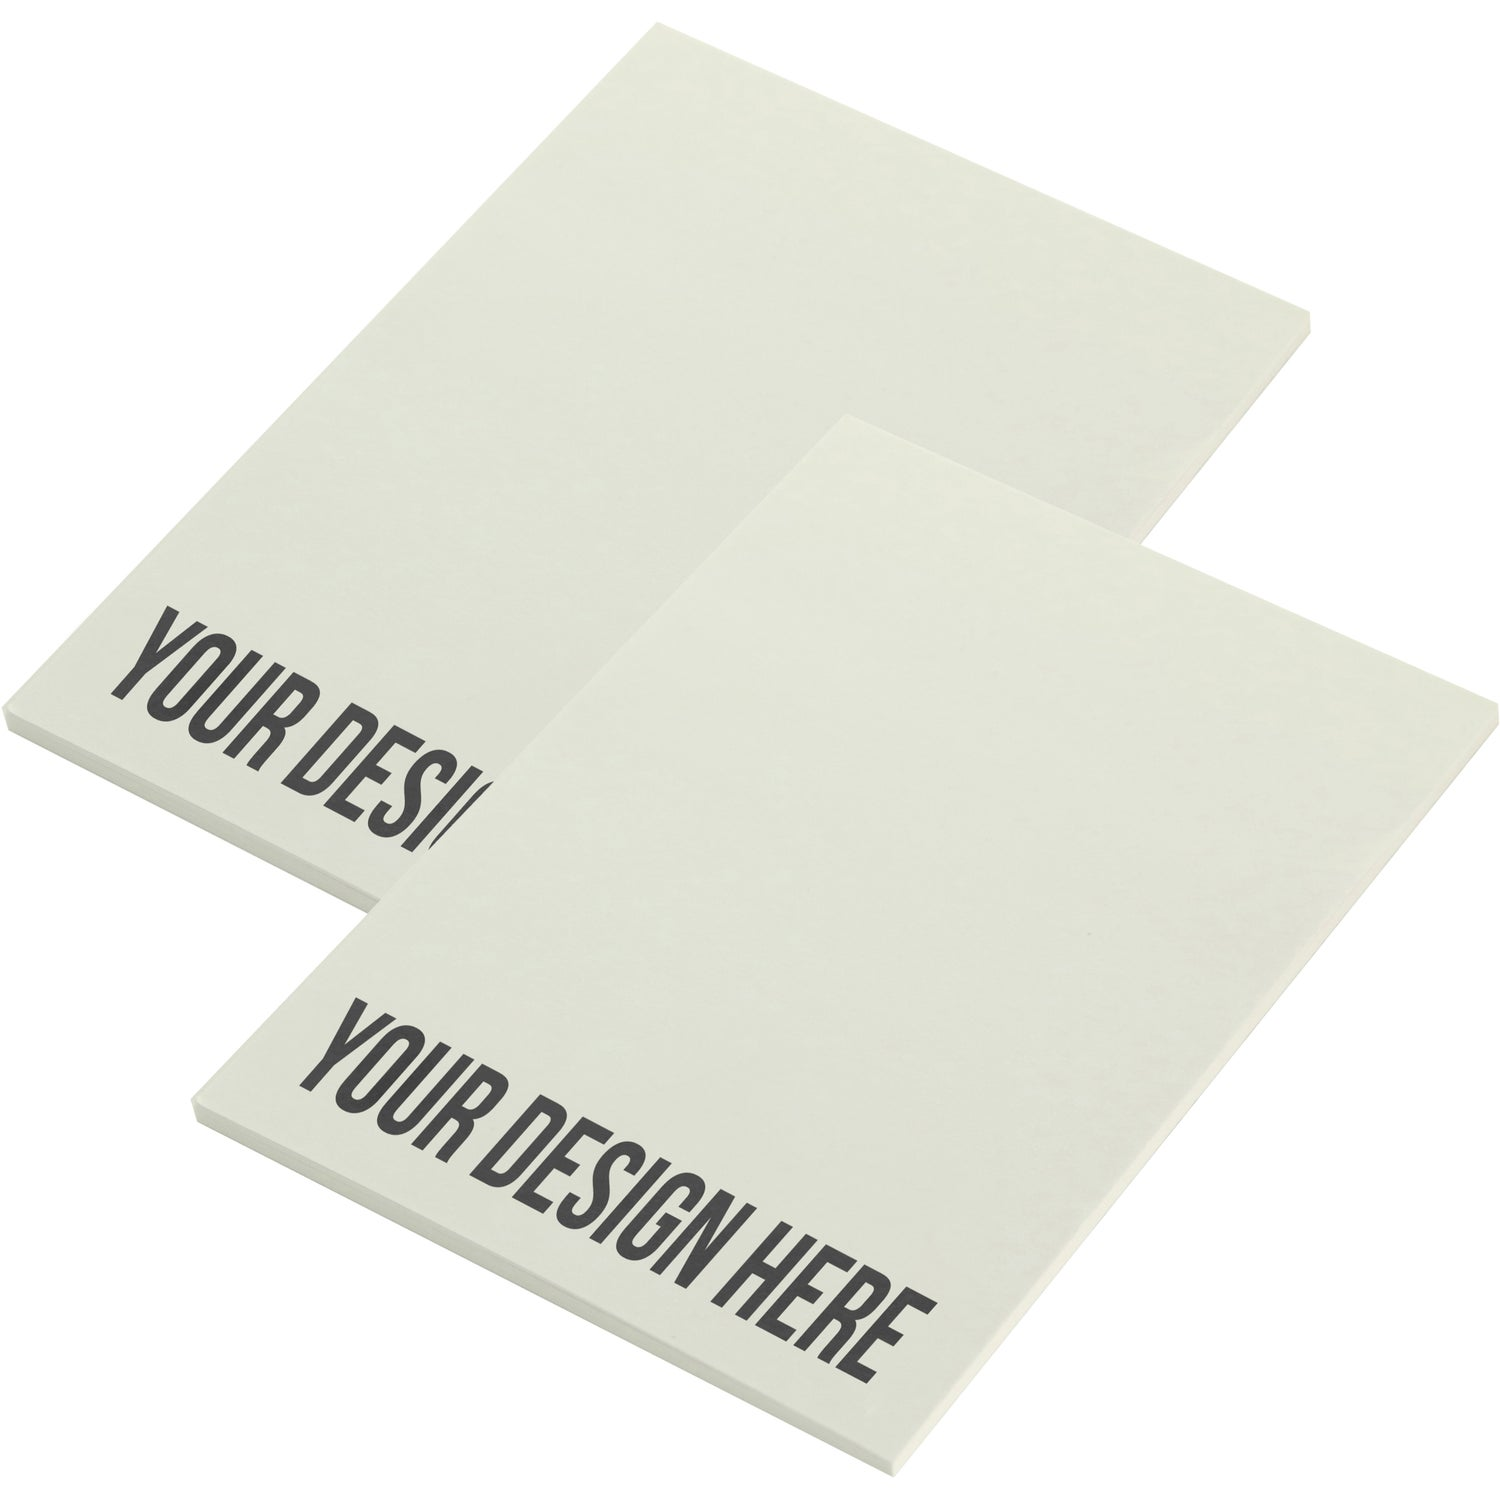 """Post-it Notes (4"""" x 6"""", 25 Sheets)"""